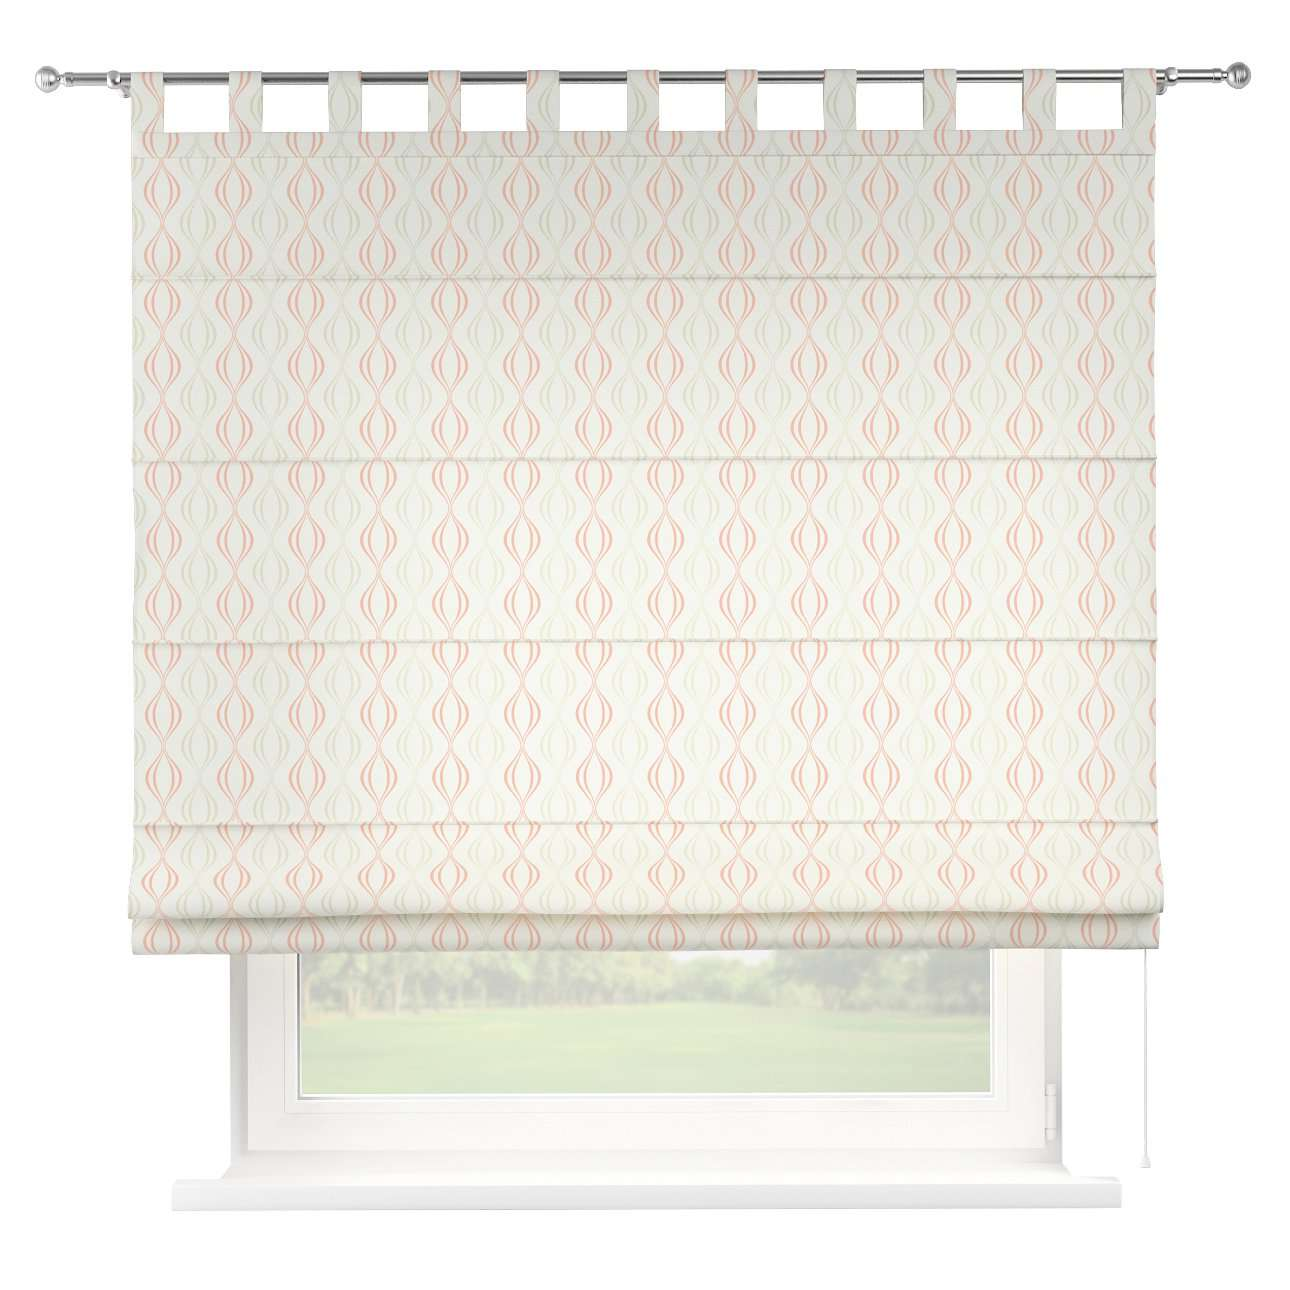 Verona tab top roman blind in collection Geometric, fabric: 141-49